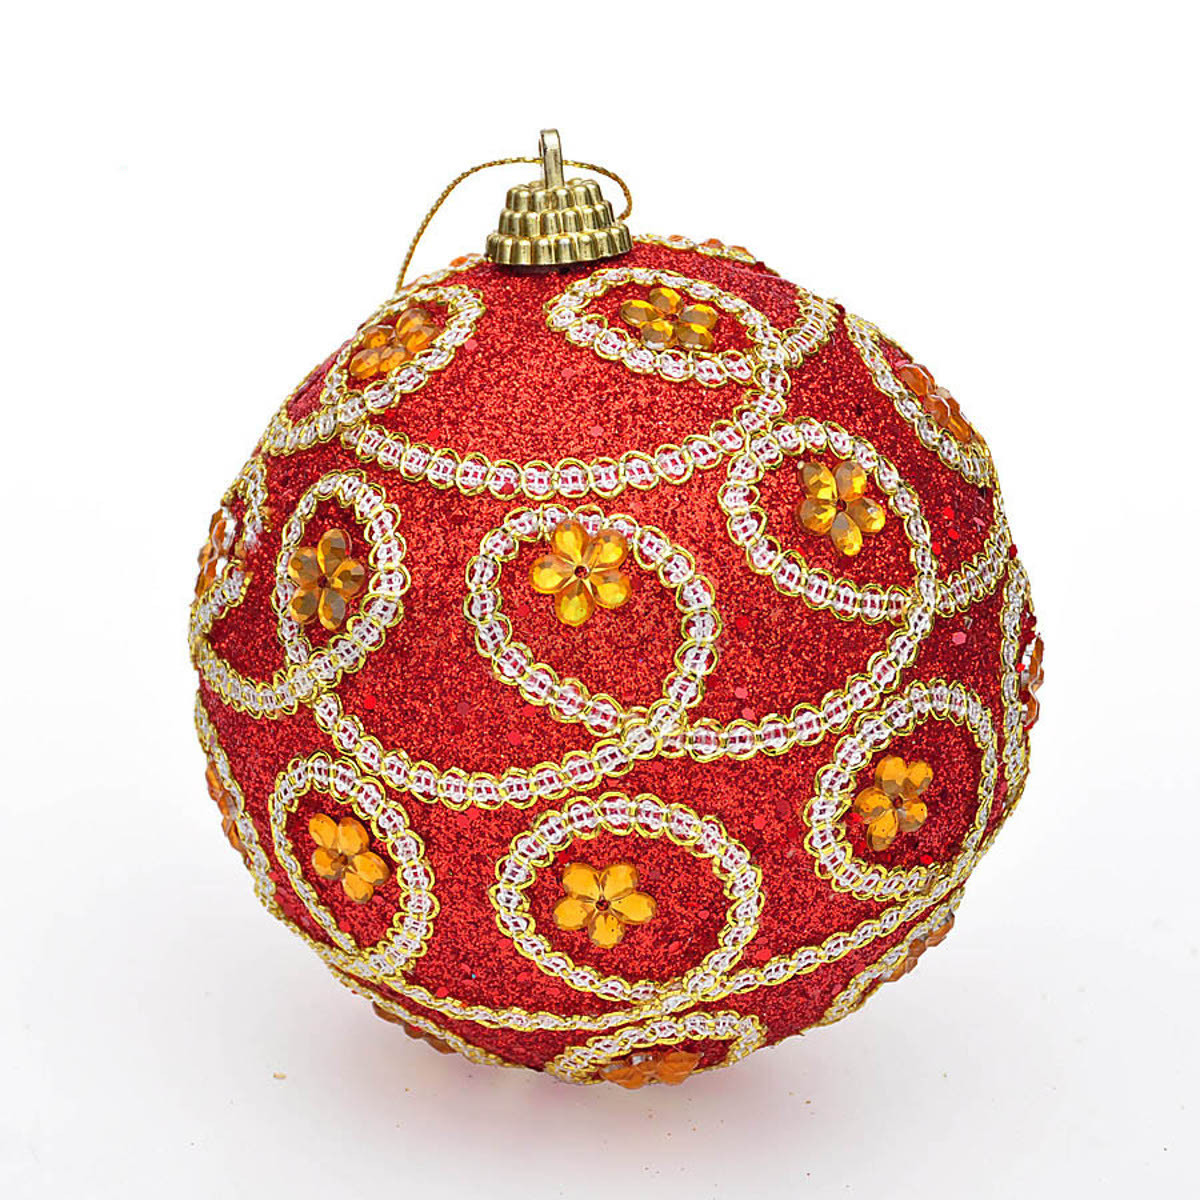 Decorative Christmas Ball Ornaments: New 8CM Christmas Decor Luxury Round Christmas Balls